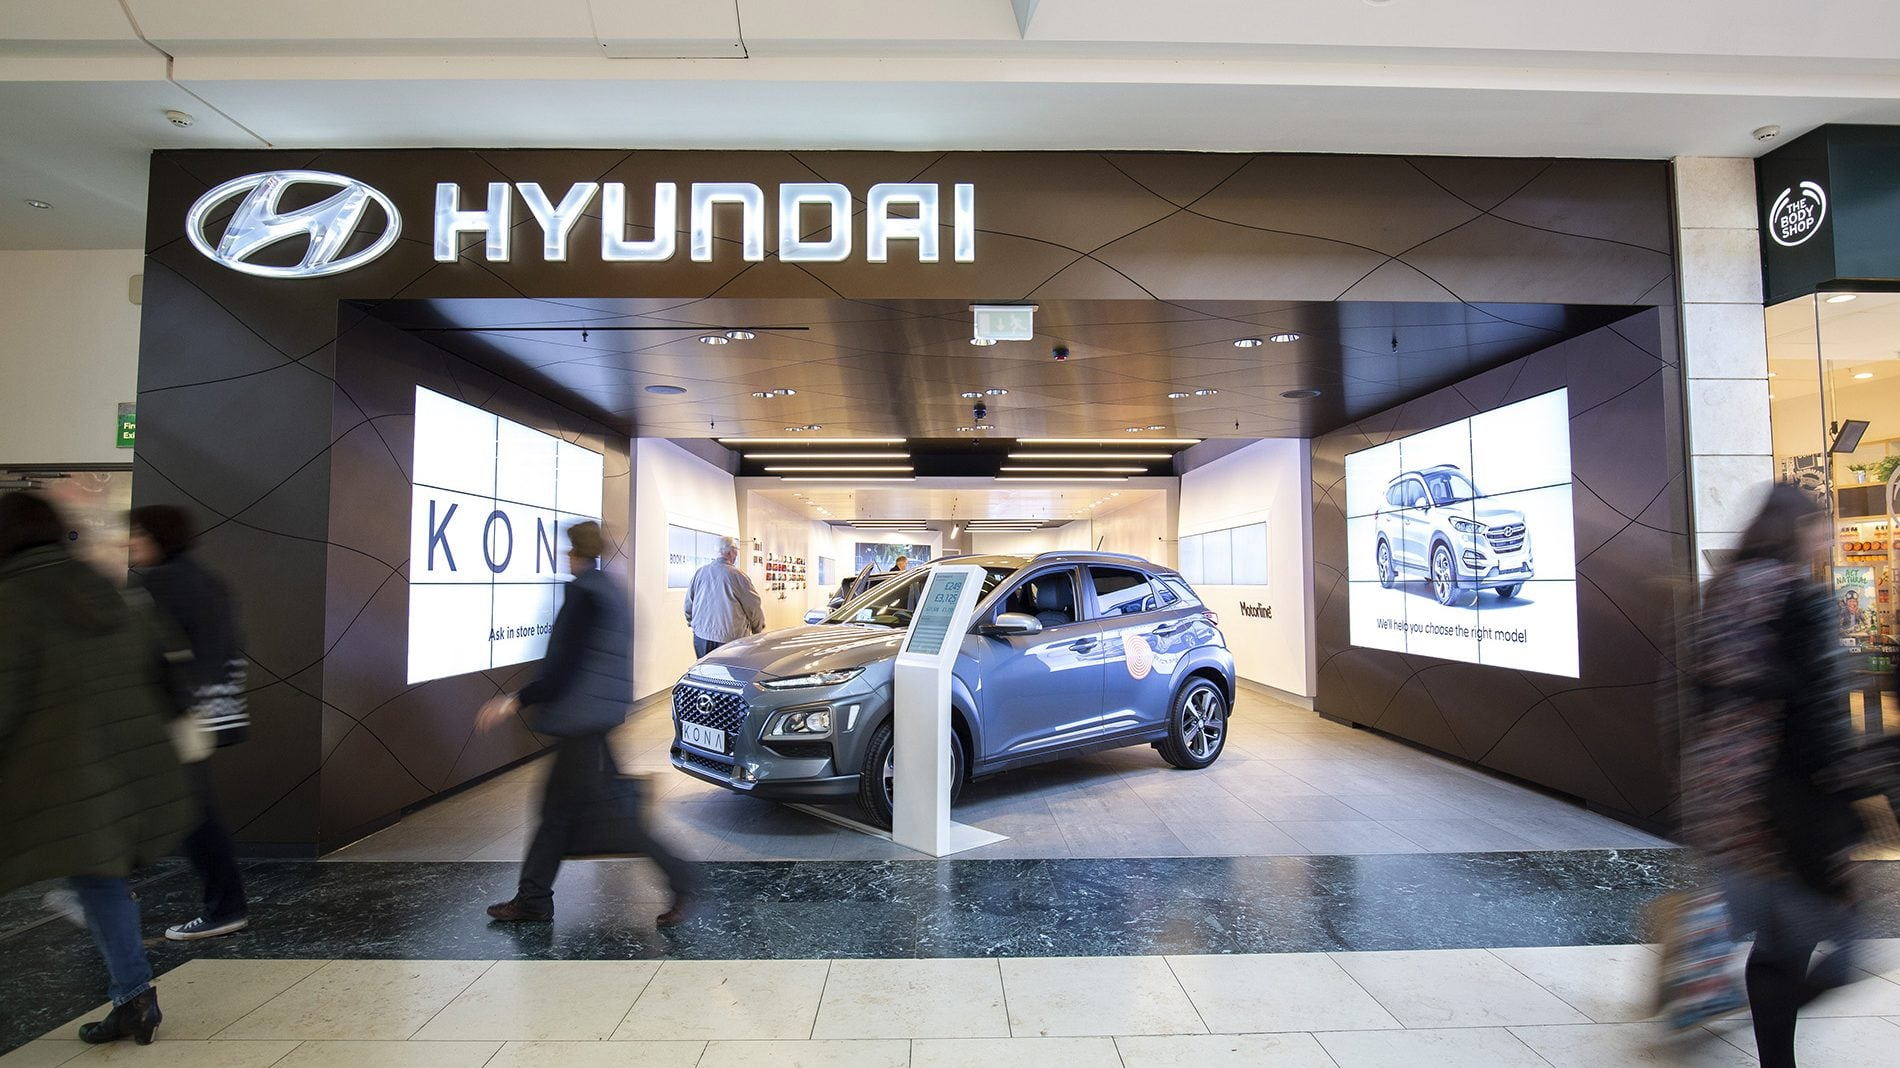 hyundai shopfront at bluewater shopping centre